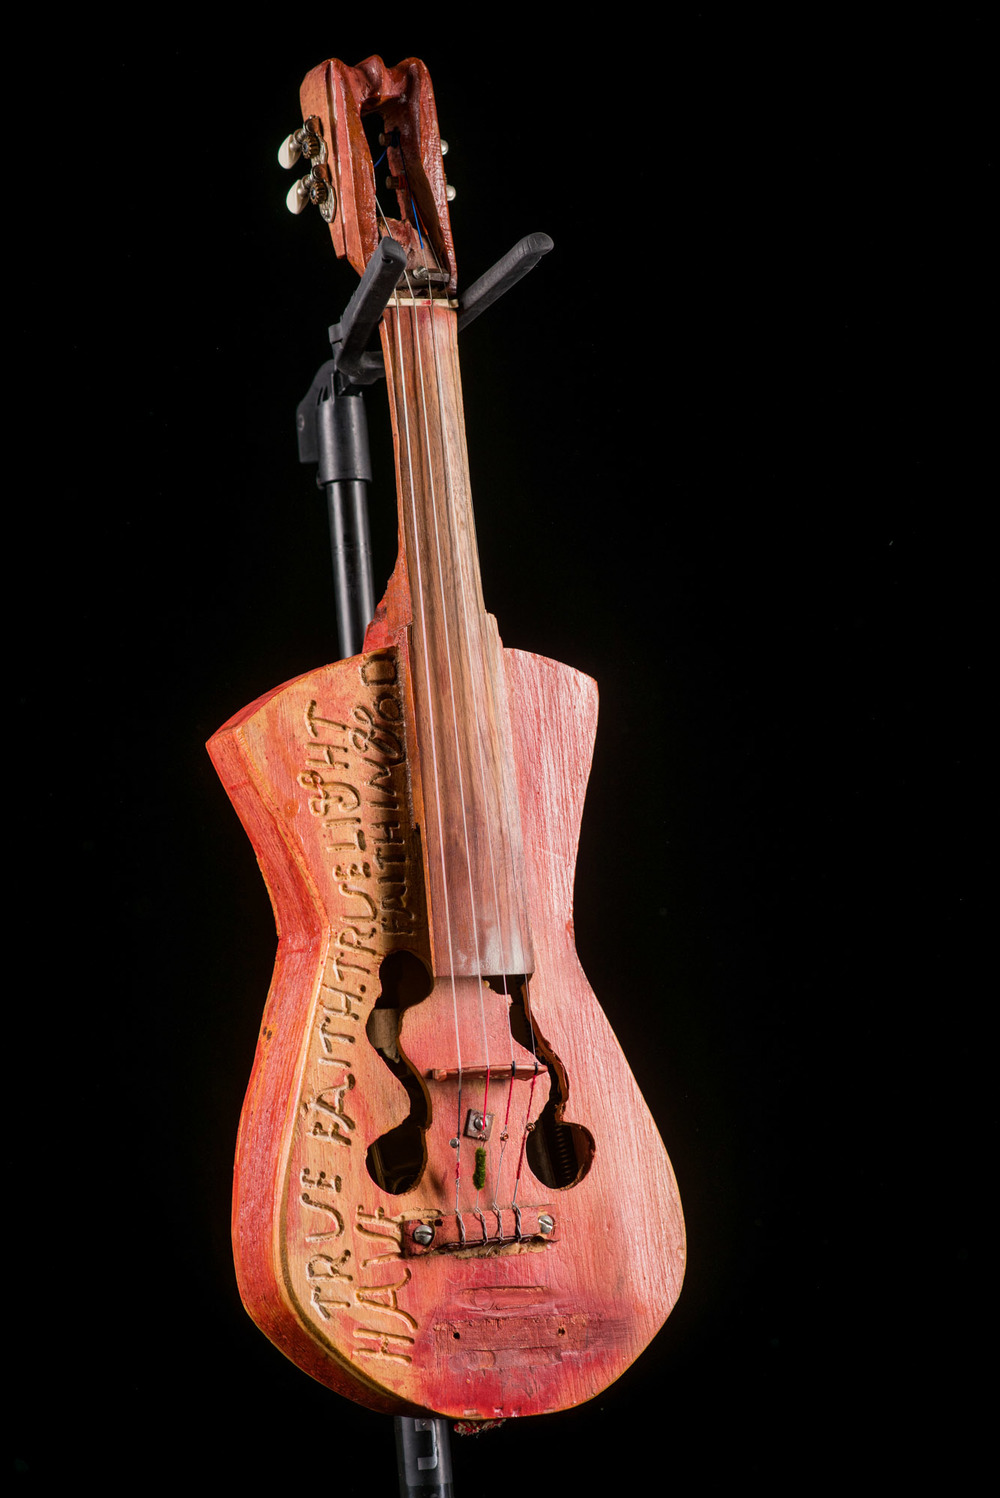 A fiddle & guitar made by legendary Ozark instrument builder Ed Stilley from Hog Scald Holler, complete with innards of springs and saw blades.